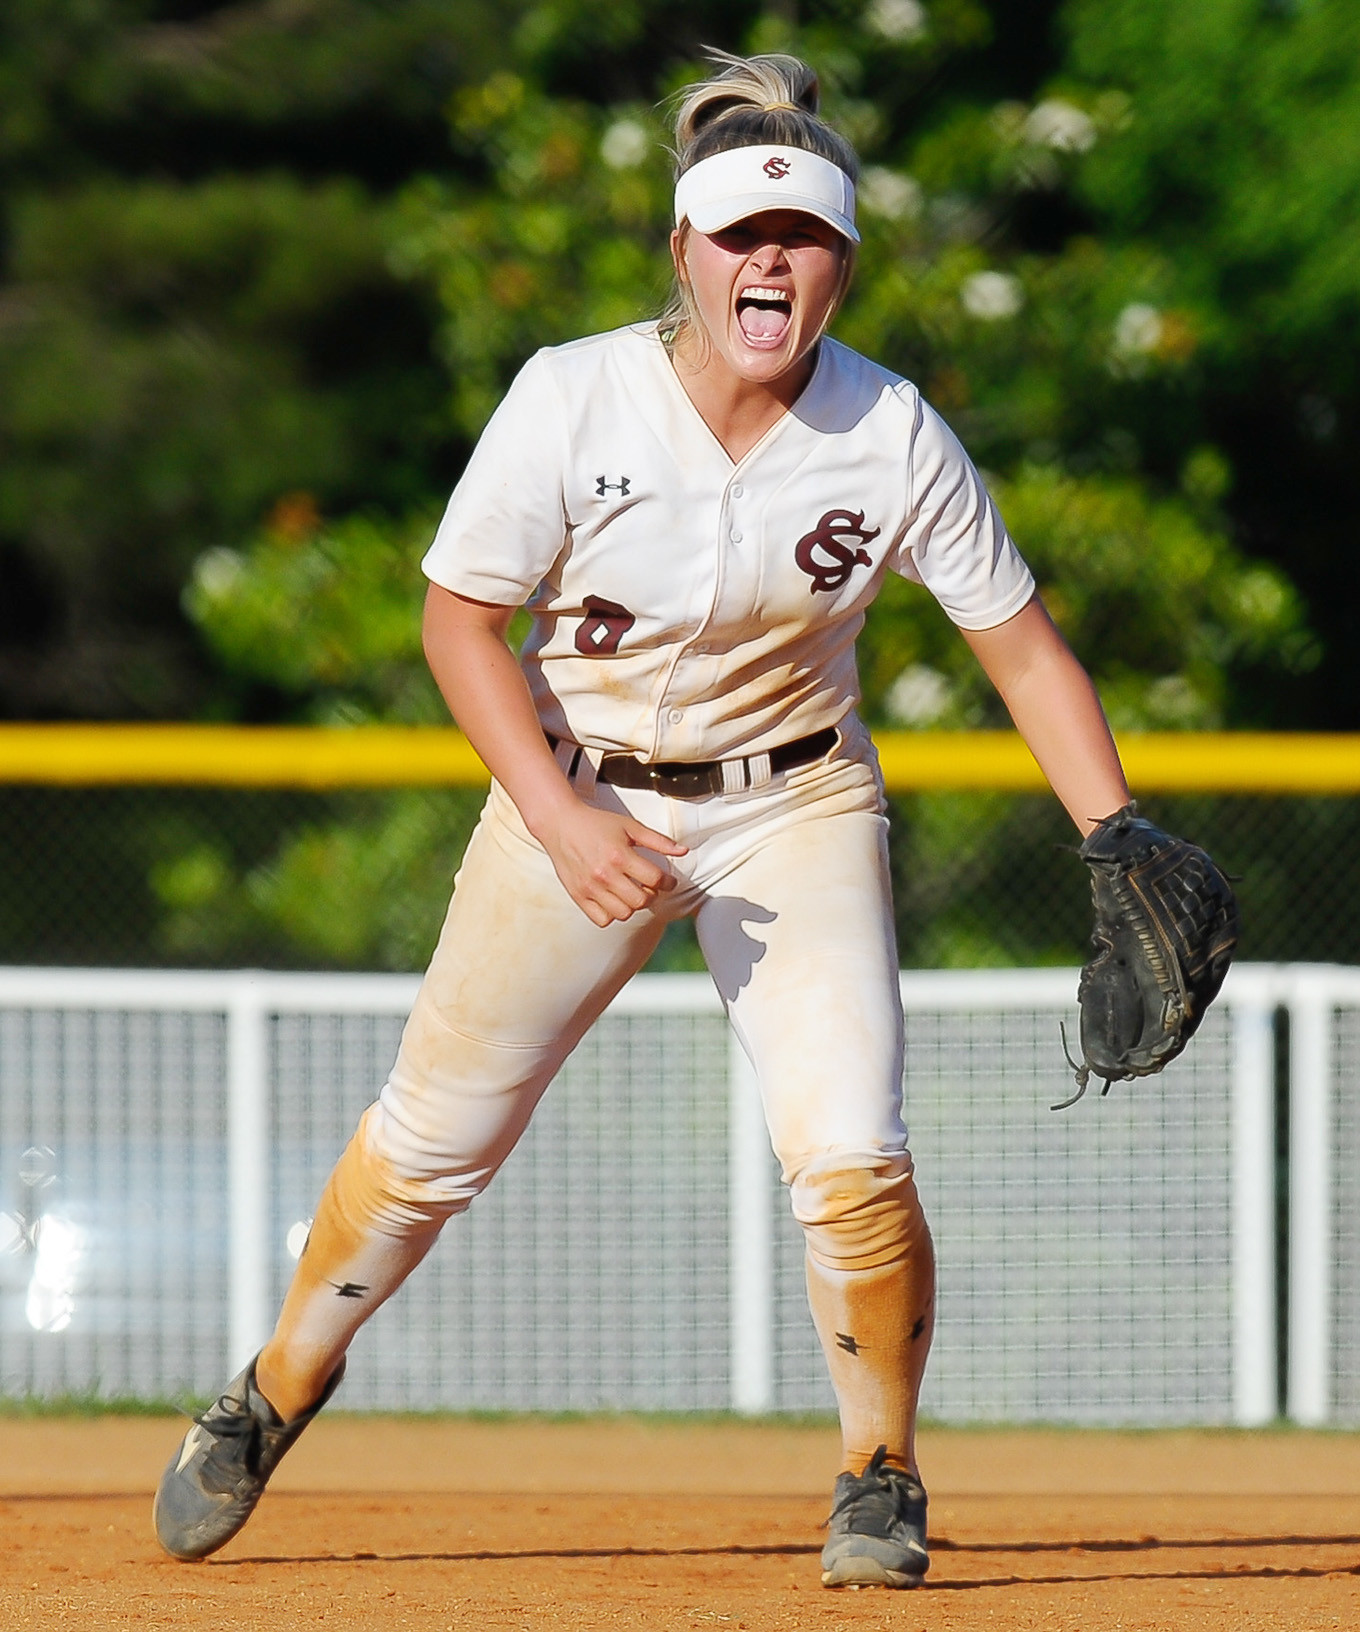 Sumiton Christian's Kendall Beth Sides was named the 2017 Gatorade Alabama Player of the Year Monday. The outfielder/shortstop helped lead the Eagles to their third consecutive state title last month. Sides, a University of Alabama signee, hit .606 this season with 109 runs, 13 home runs, 13 triples and 85 RBIs to go along with 99 stolen bases. Curry's Ashlee Swindle won the award last year. For more on Sides, see A8 of today's Eagle.  Daily Mountain Eagle - file photo.